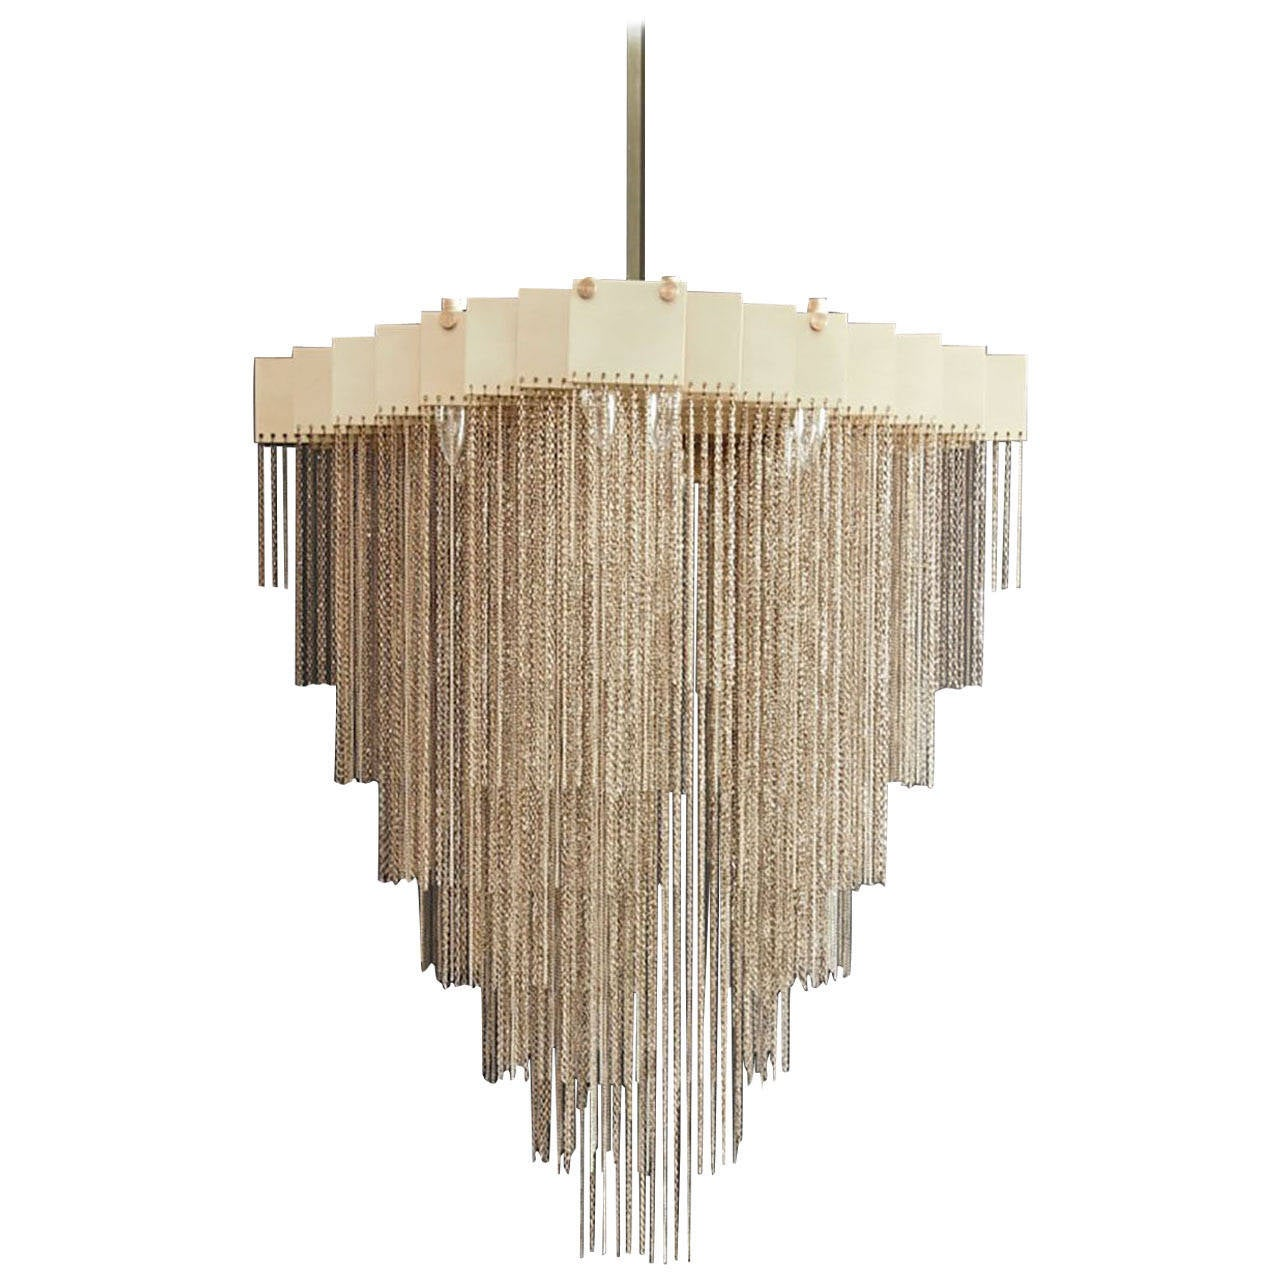 Welles long modular chandelier in customizable dimensions and welles long modular chandelier in customizable dimensions and finishes black for sale at 1stdibs arubaitofo Images